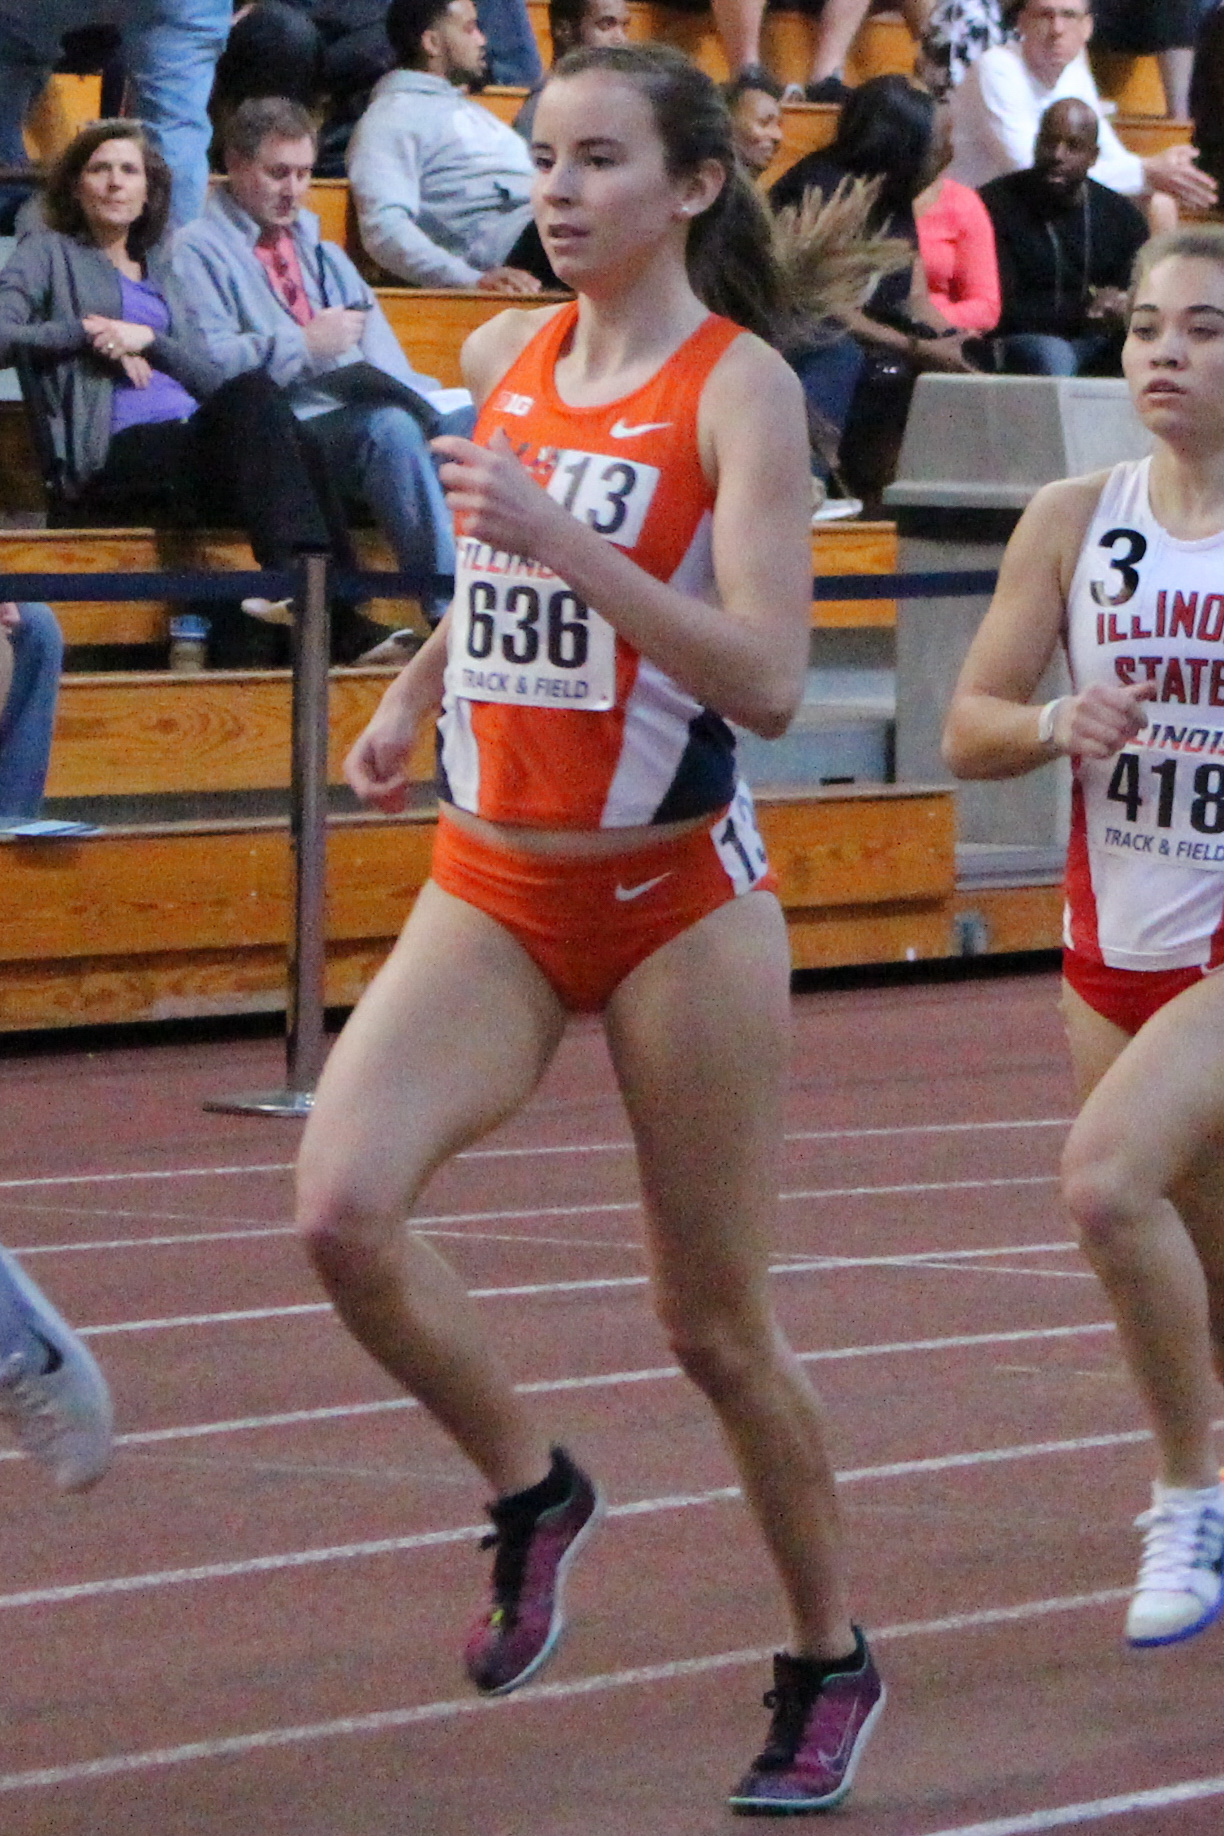 Illinois' Valerie Bobart running in the Orange and Blue meet at the Armory on Saturday, Feb. 20, 2016